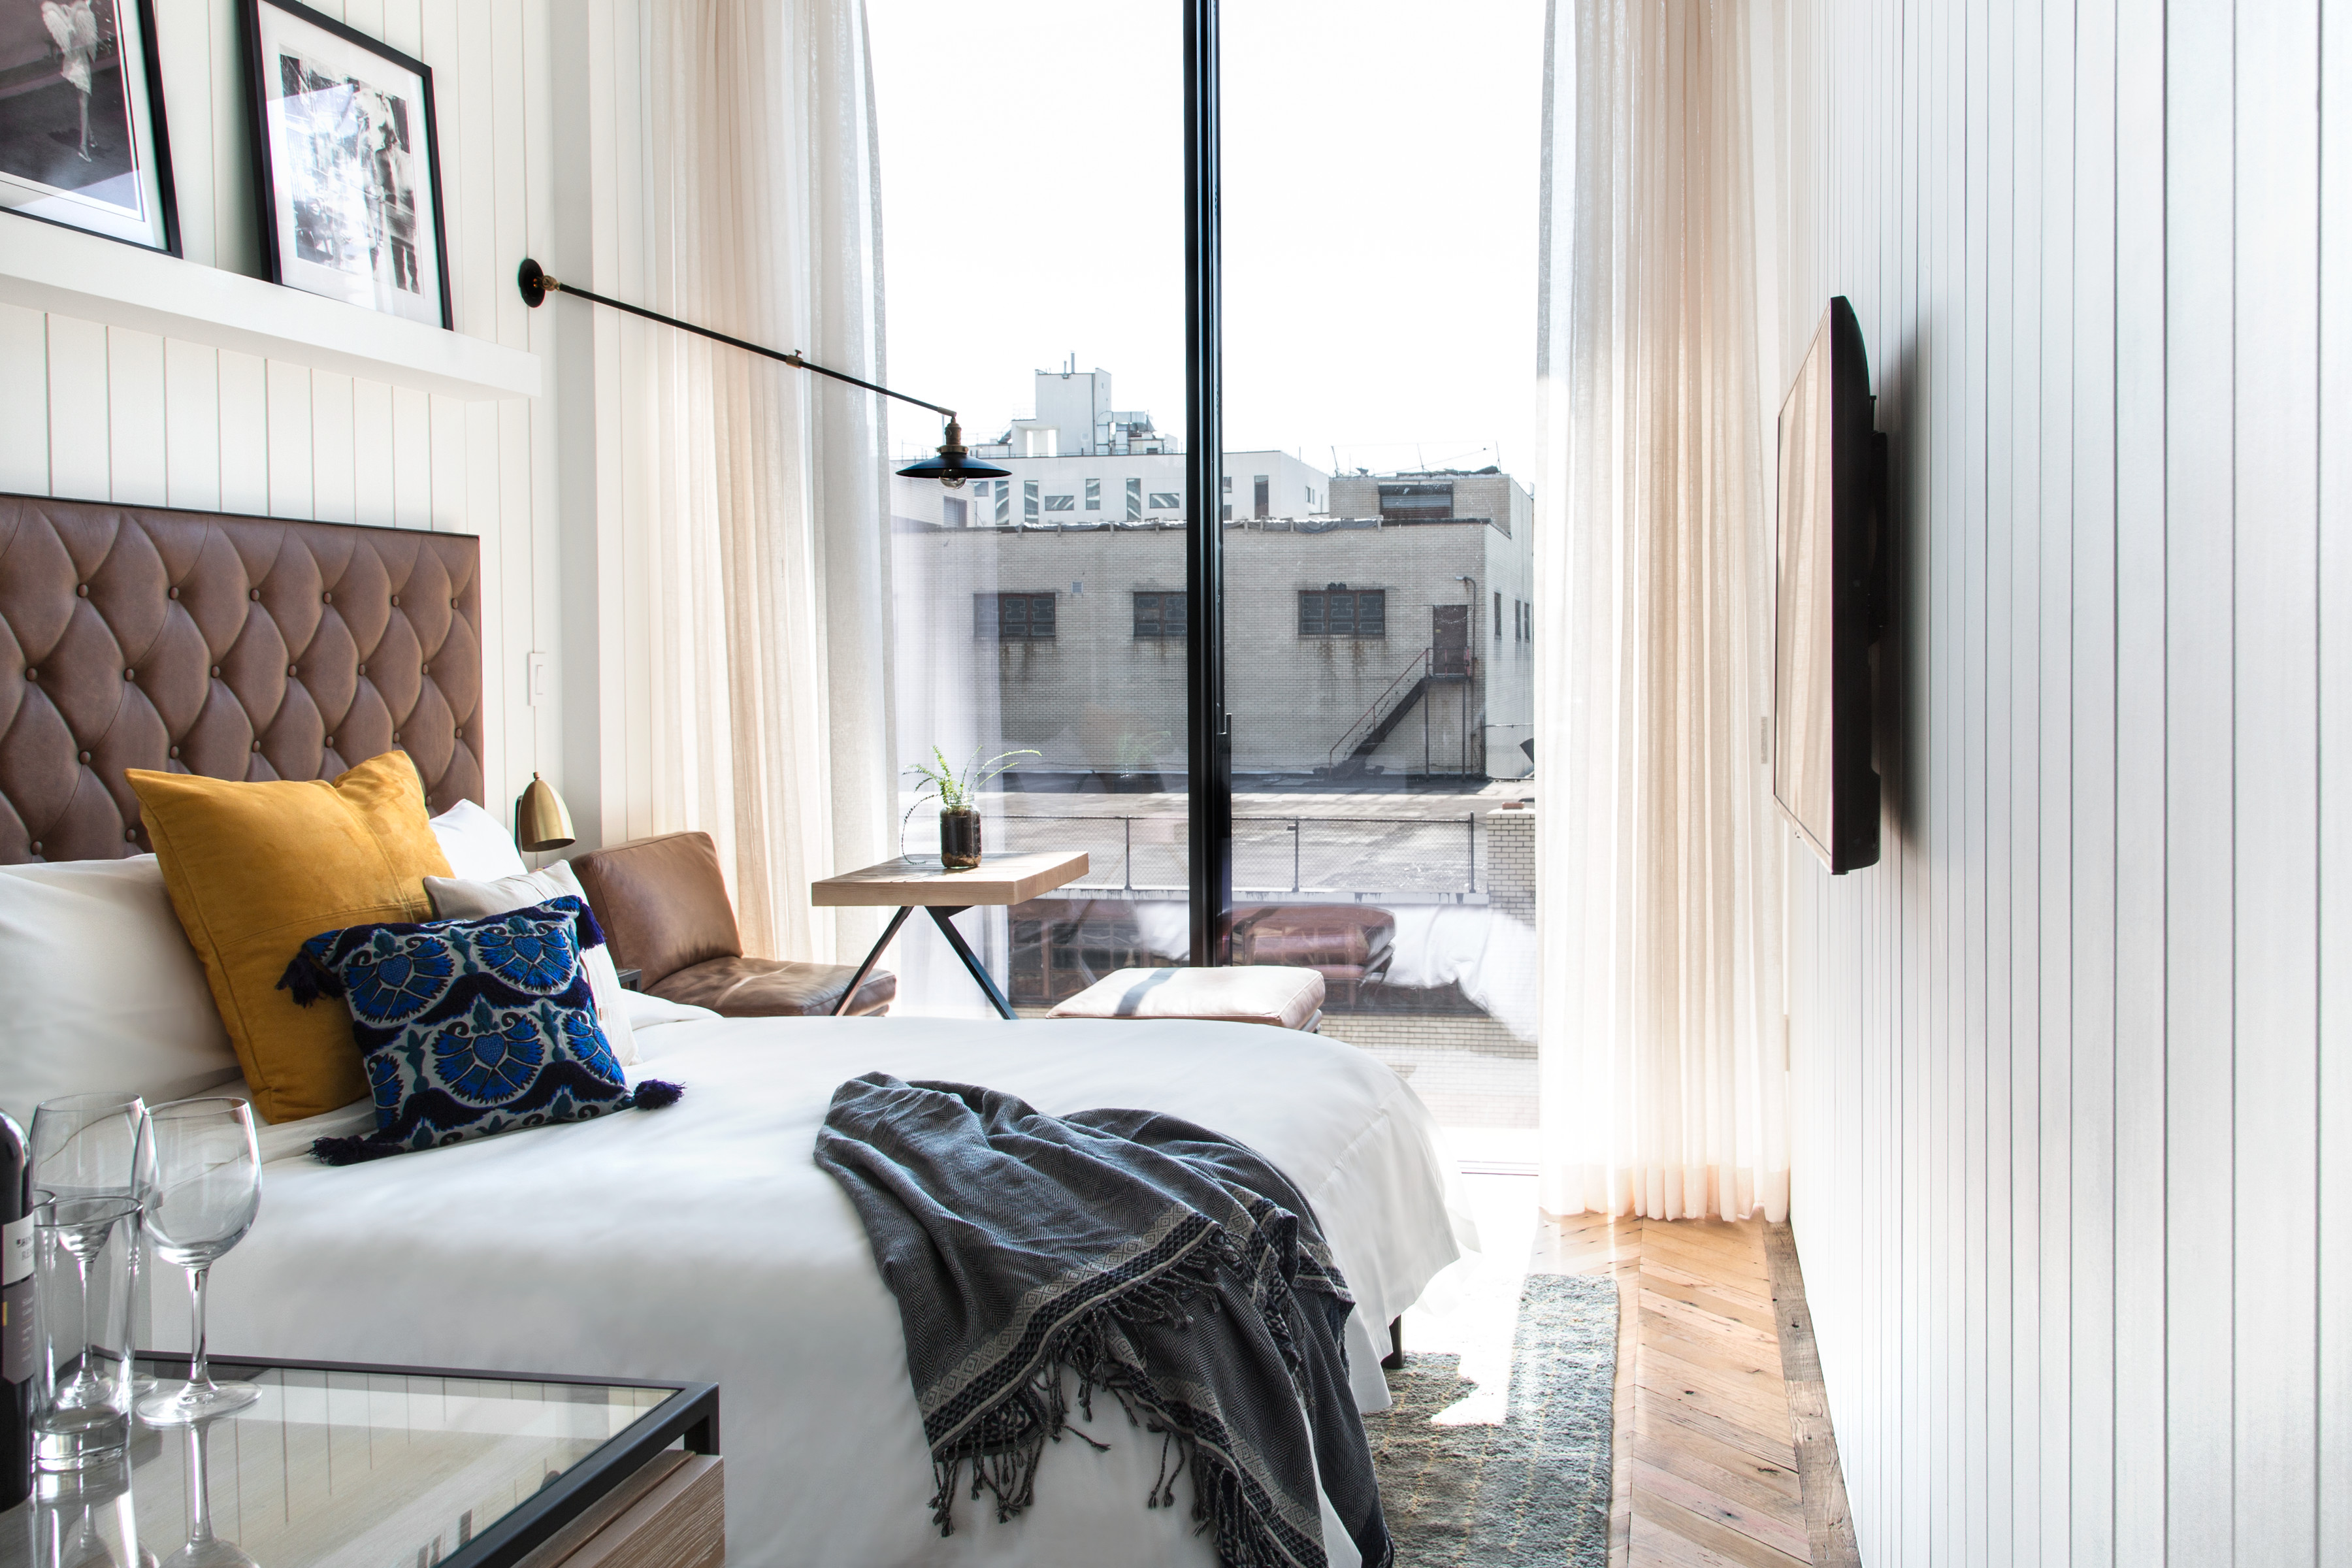 brooklyn's coolest hotels and hottest hangouts | cnn travel